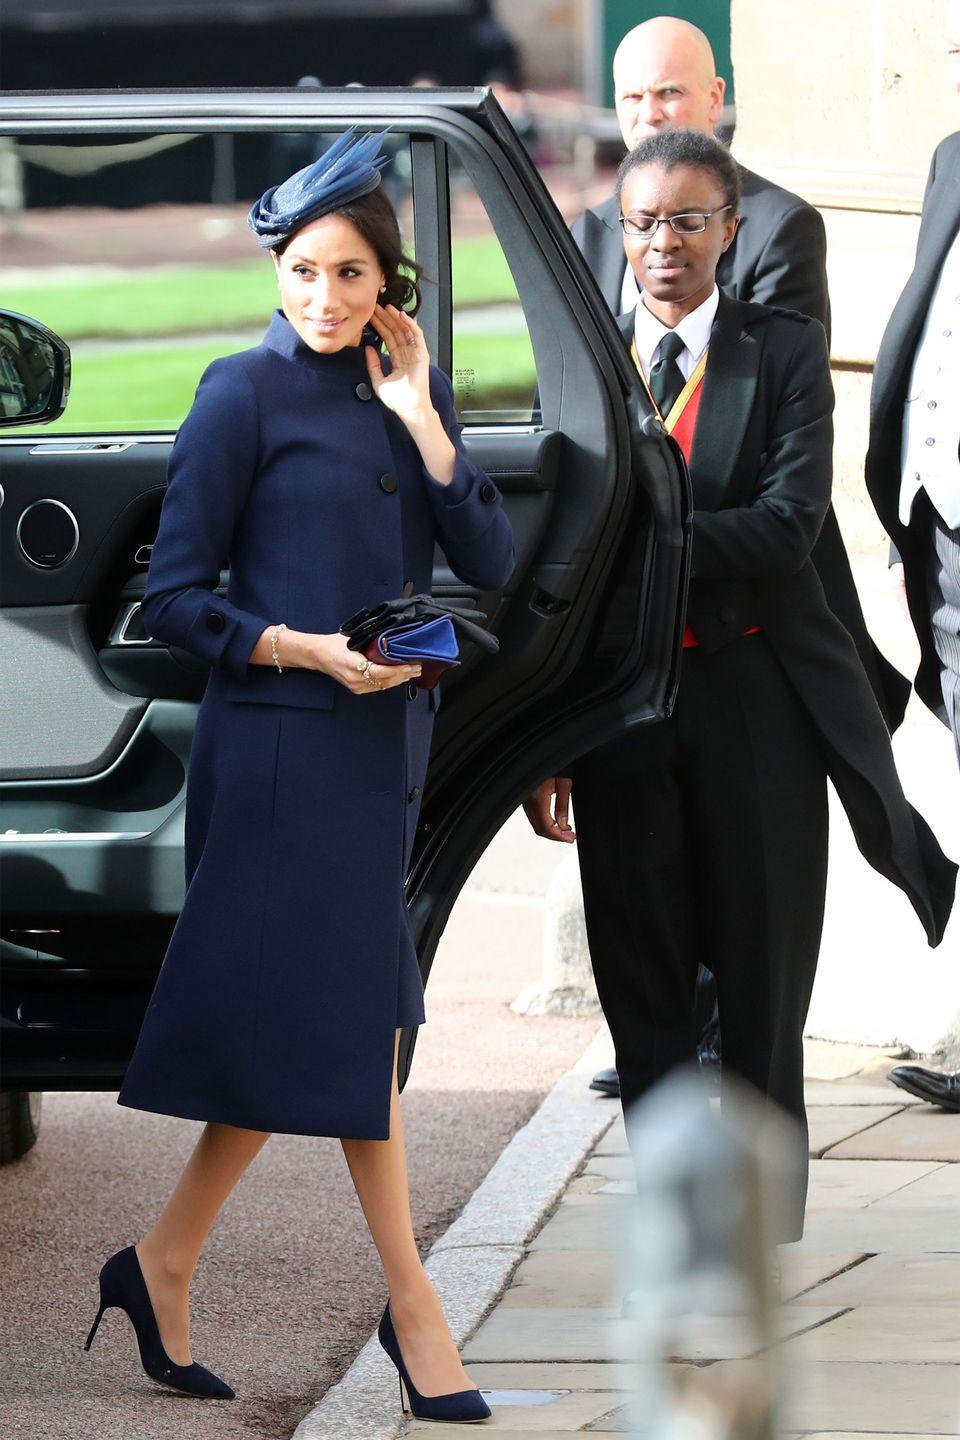 <p>Meghan arrives ahead of the wedding of Princess Eugenie of York to Jack Brooksbank at Windsor Castle.</p>